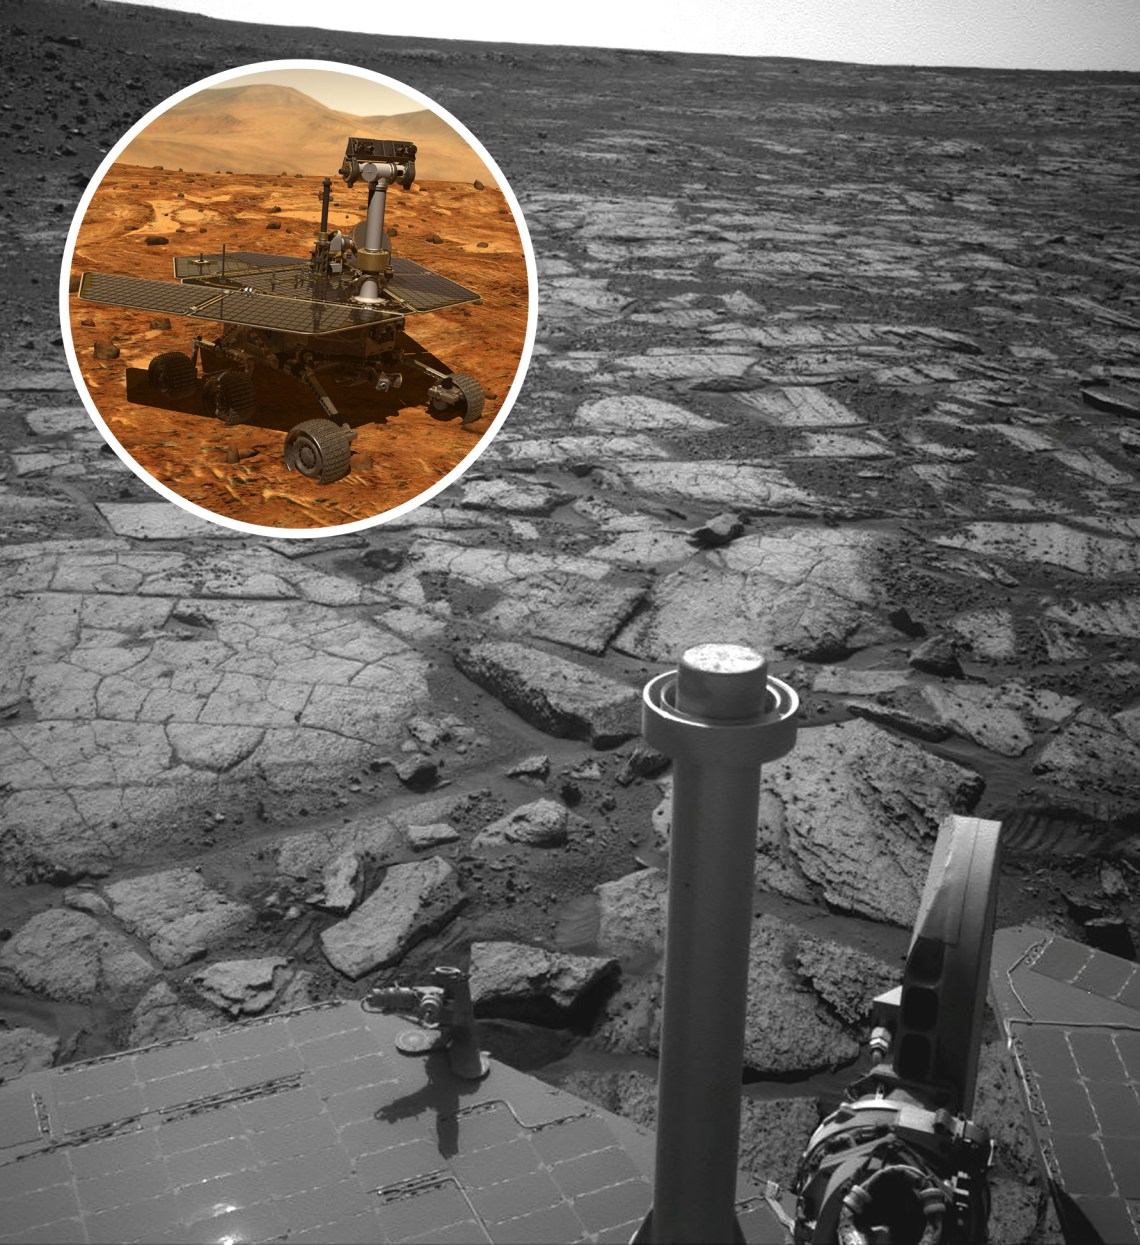 Opportunity's Nav Camera took this photo on Sol 3391 (NASA/JPL-Caltech), with inset rendering of Opportunity (NASA/JPL-Caltech)